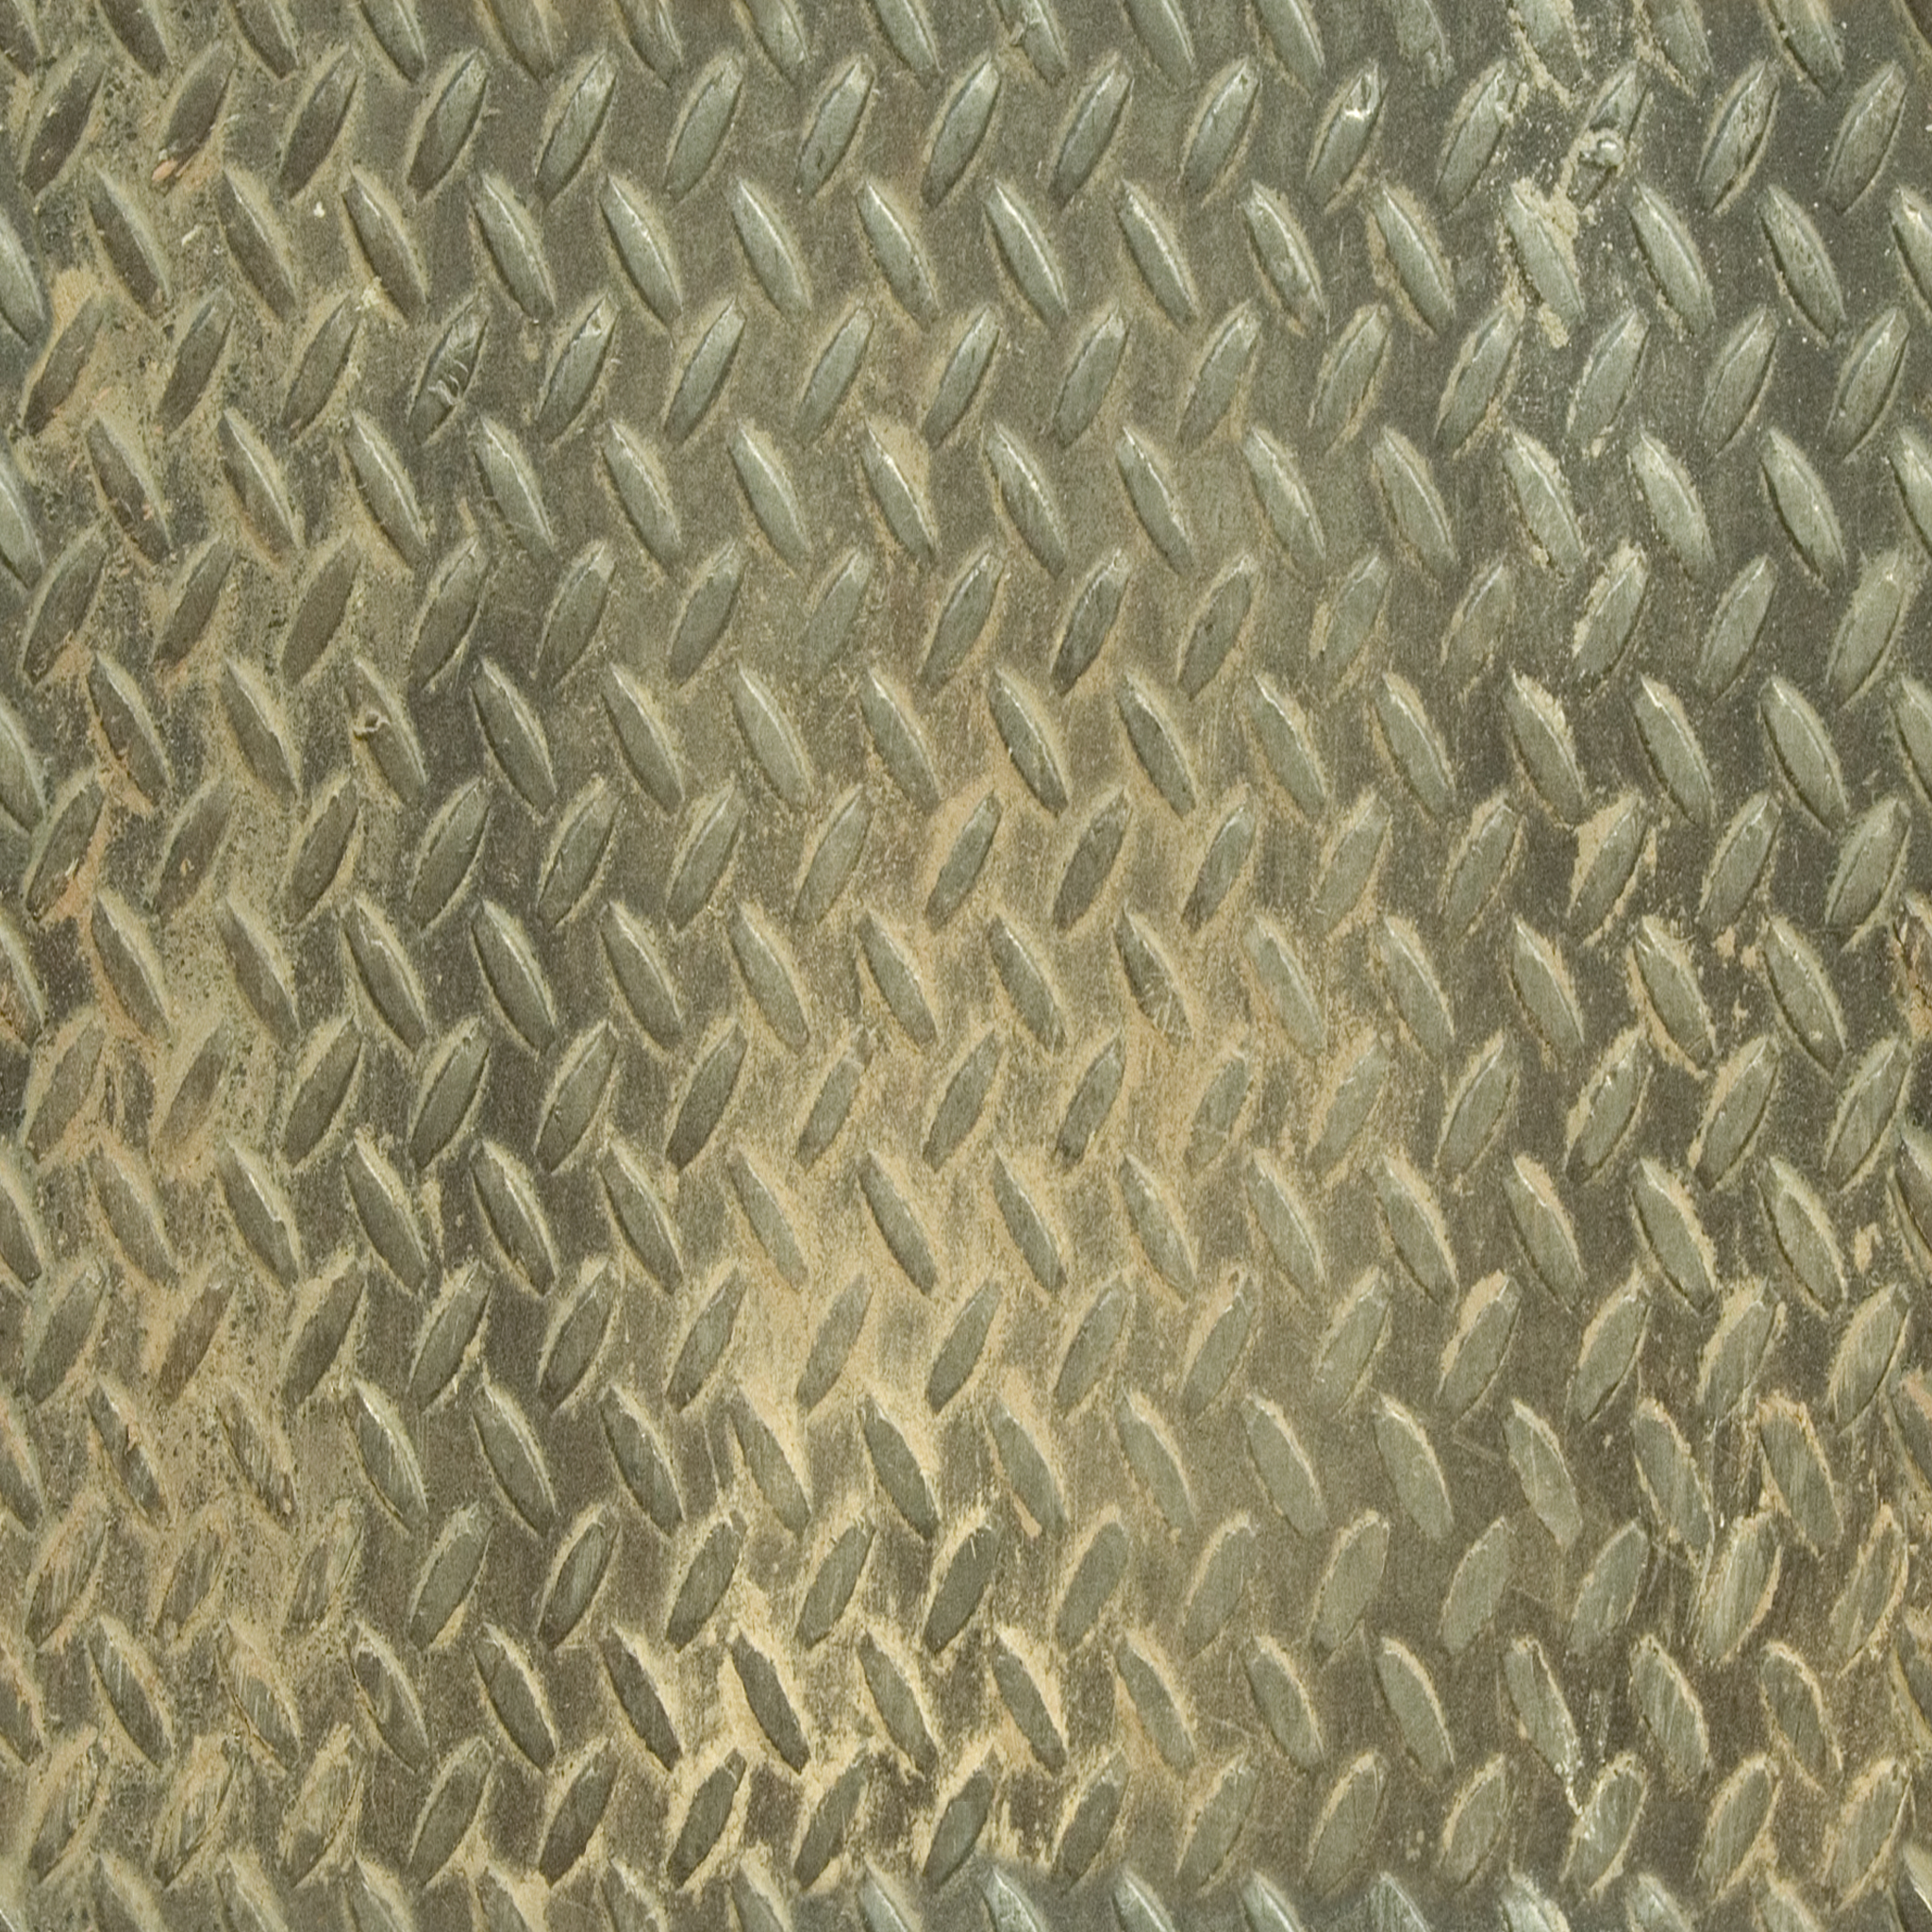 Chrome Metal Grate.jpg